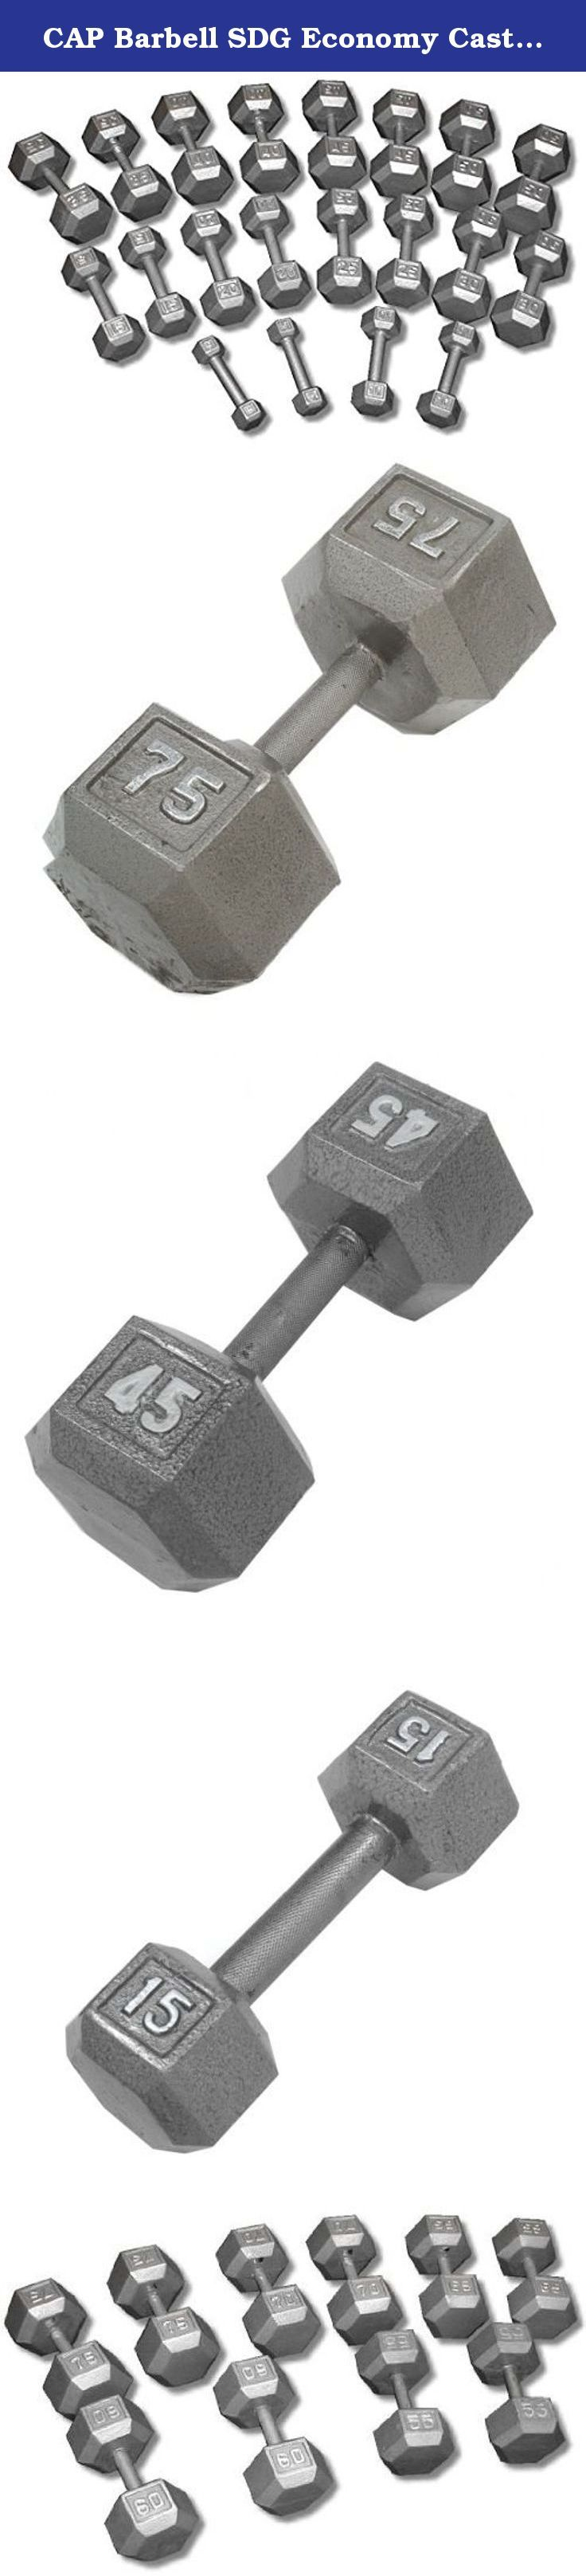 CAP Barbell SDG Economy Cast Iron Hex Dumbbell Set - 5 to 100 lbs (20 pairs) - Garage Gym Weight Set. Economy Cast Iron Hex Dumbbell Sets from CAP Barbell - Hex dumbbell sets are often the perfect dumbbell choice for home gym and garage gym use. They are economical and space efficient and for a lot of people that is the most important criteria when purchasing dumbbells for home use. Hexagonal dumbbell heads are non-rolling when set down on the floor or racks. Cast iron heads increase in…